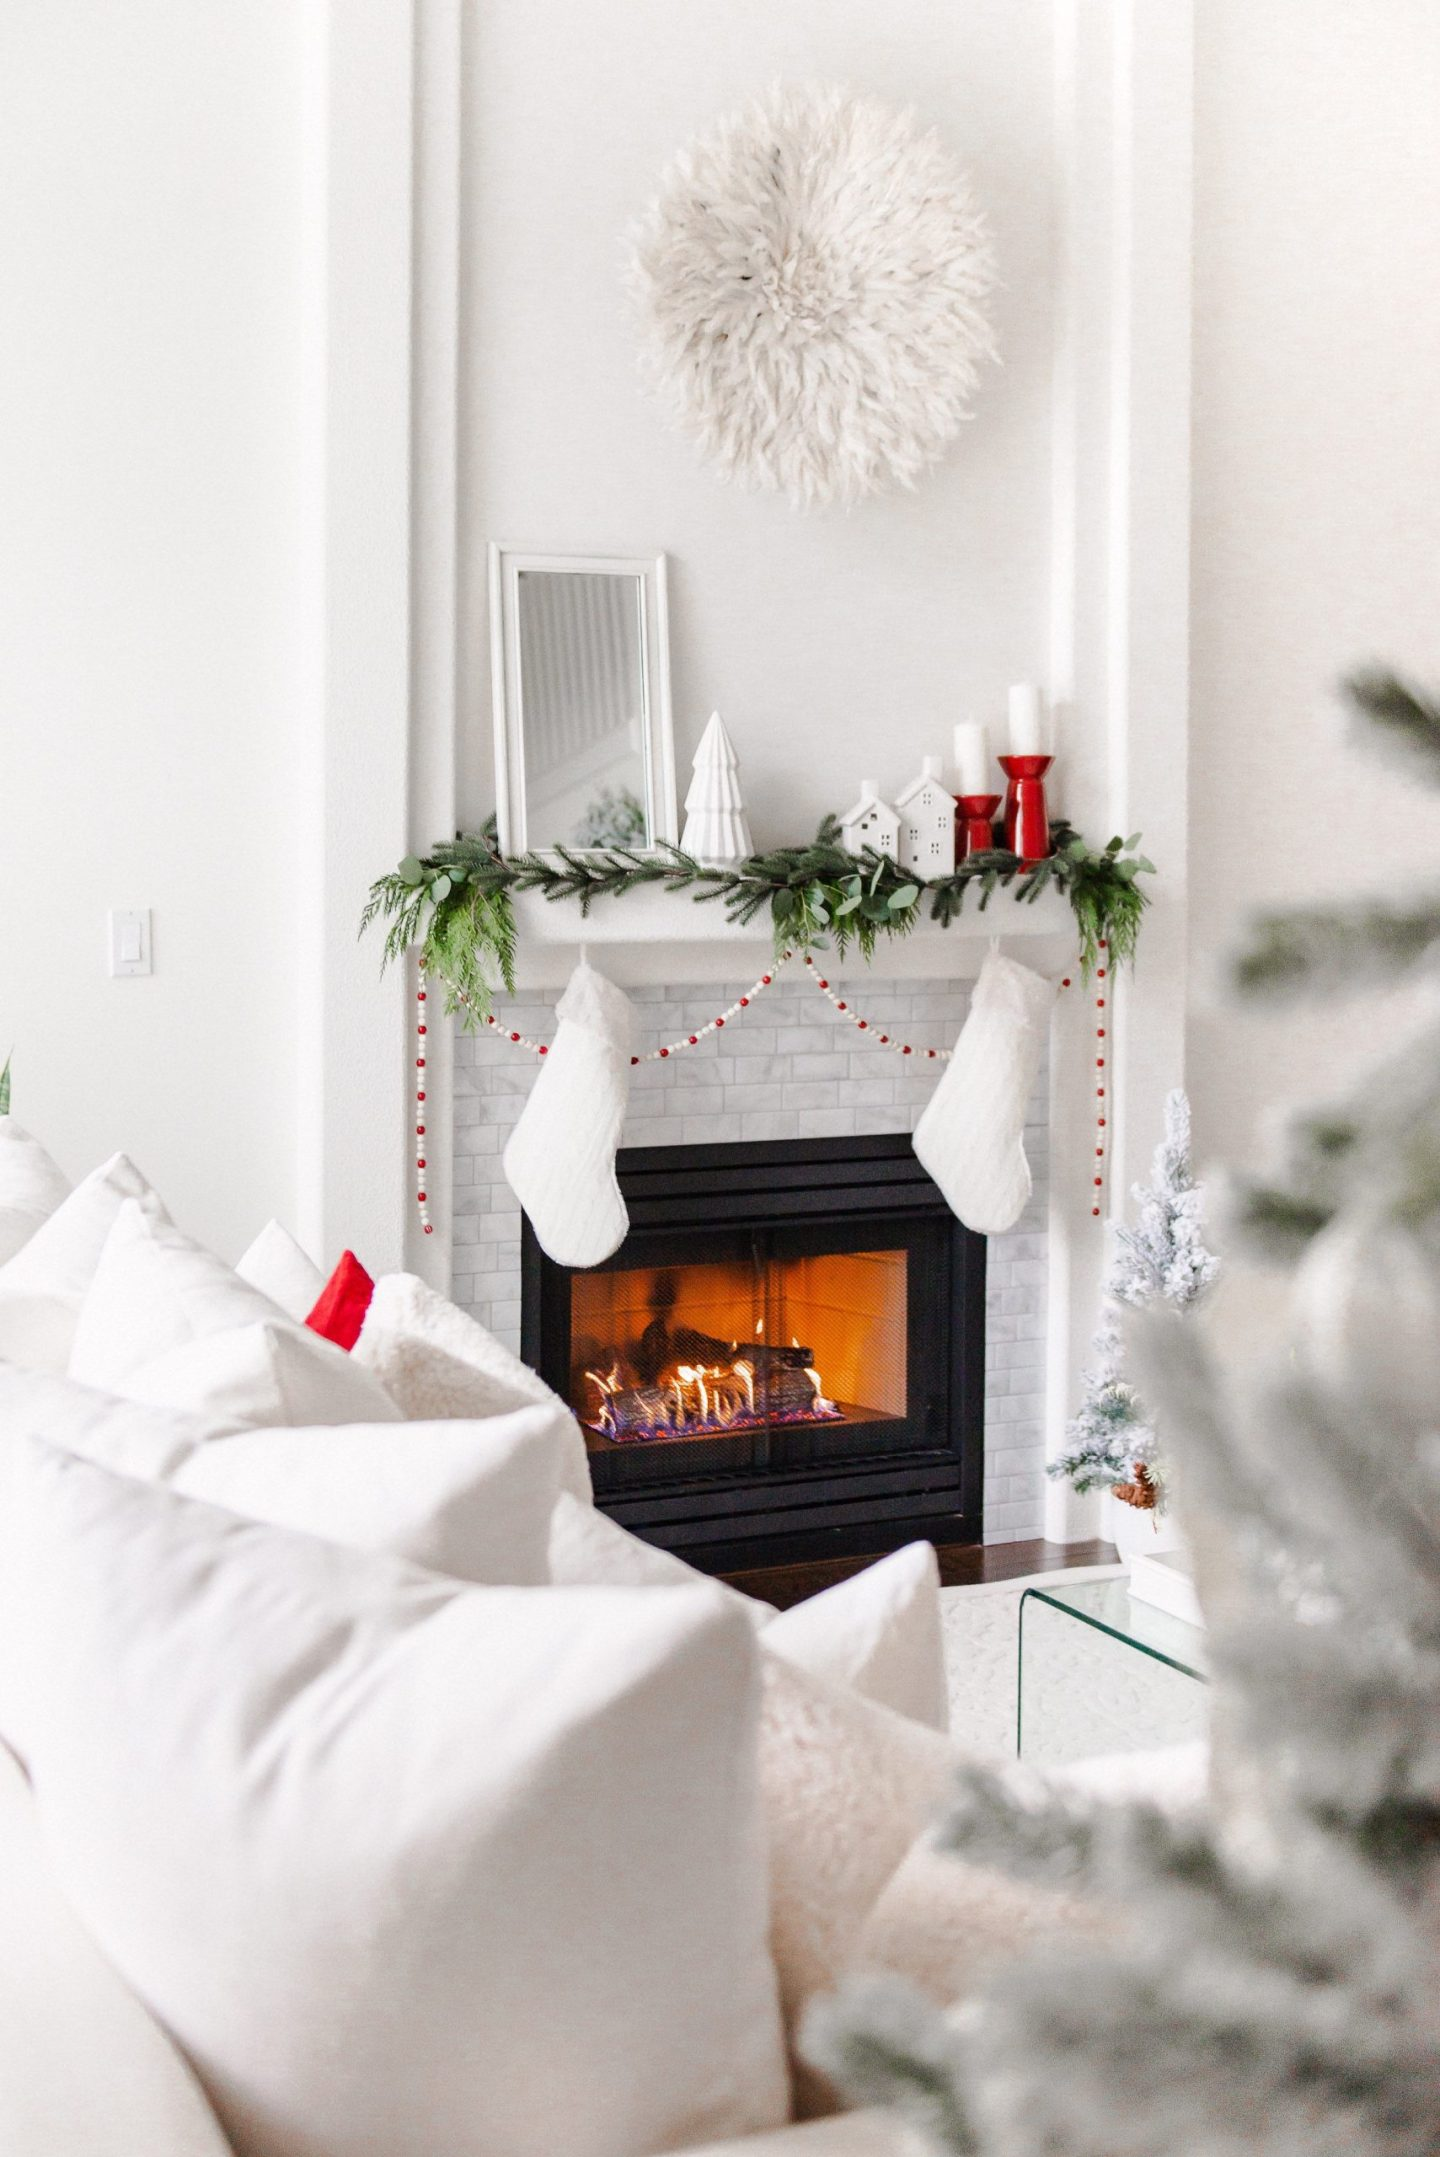 My Classic Christmas Mantel with White and Red